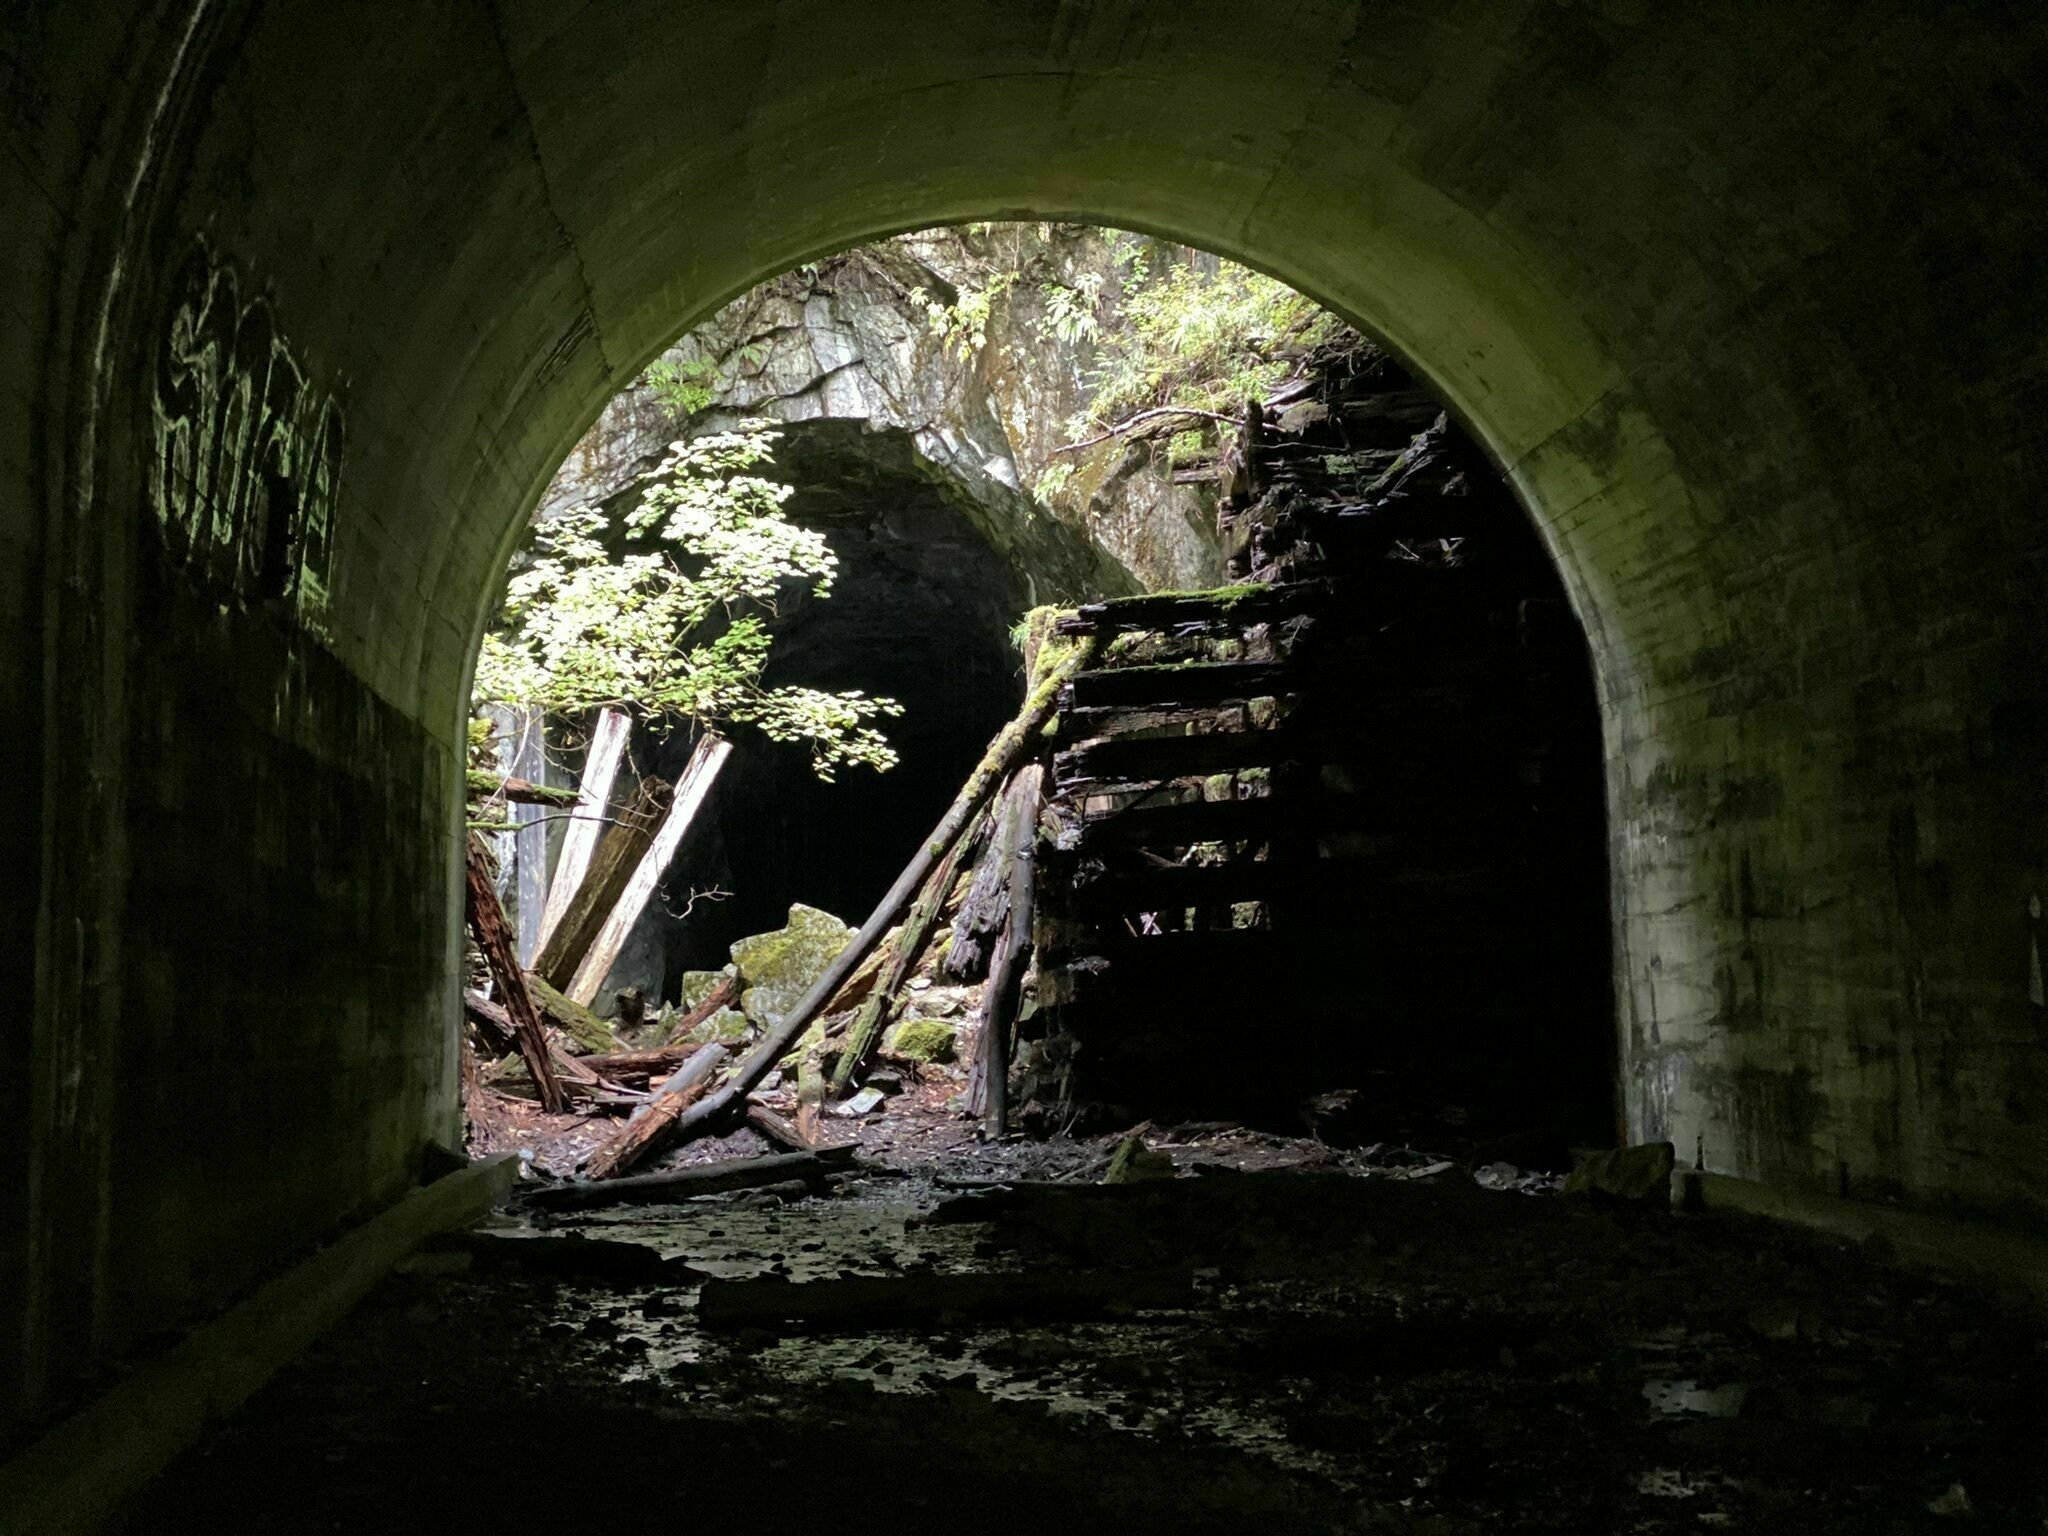 This Railroad Hike In Washington Was Named One Of The Scariest Haunted Hiking Trails In The U.S.